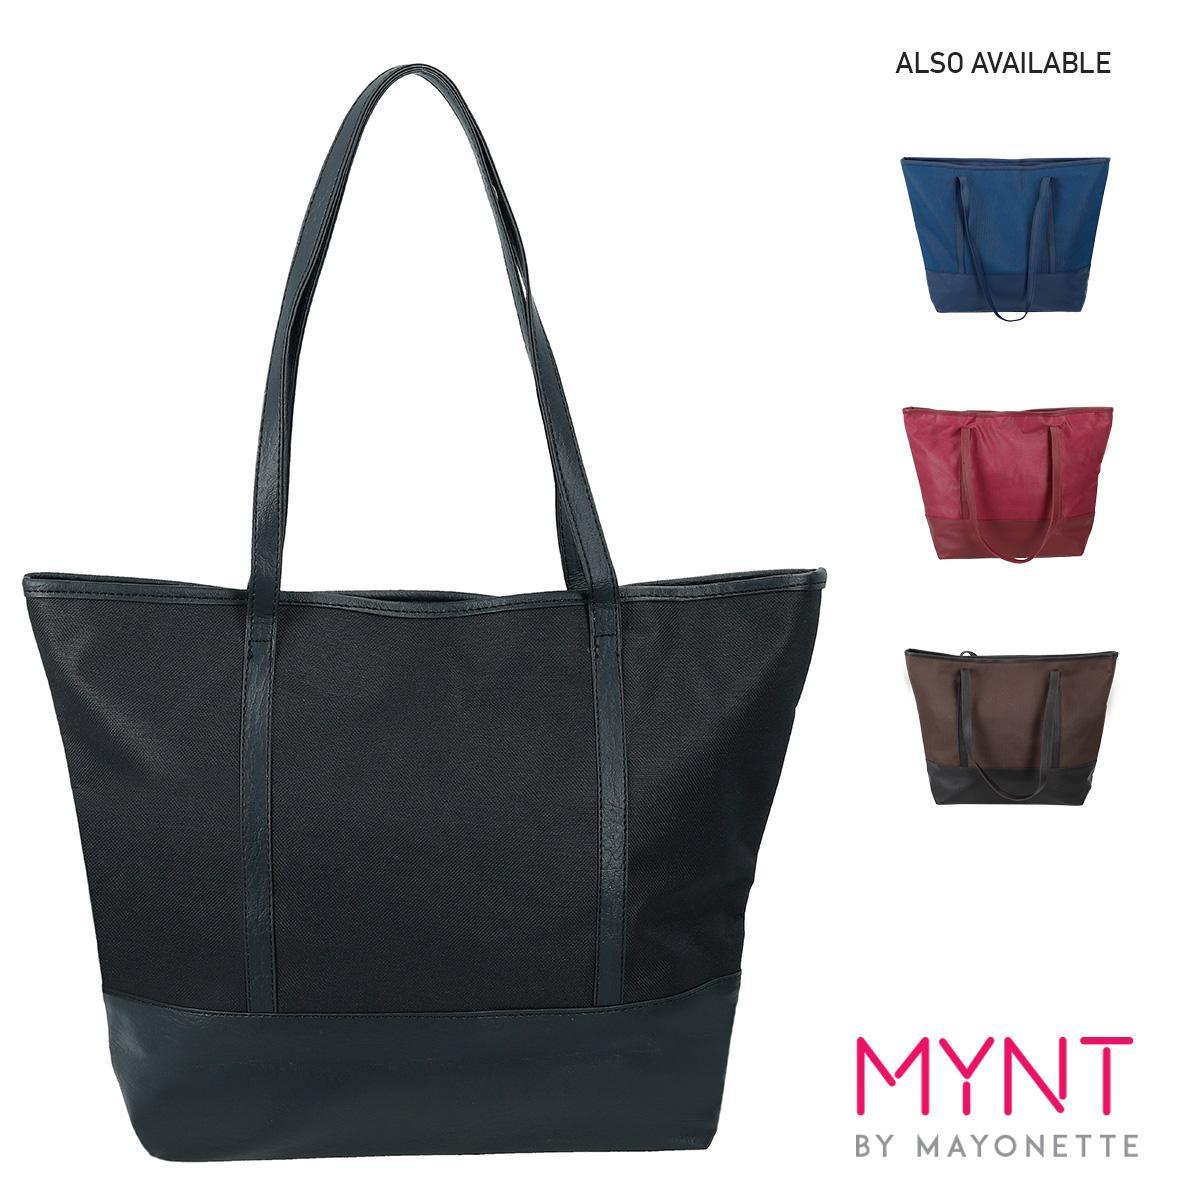 MYNT by Mayonette Tas Wanita Korean Style Tas Bahu Canvas Totes Fashion Bag  - Komika Totes 9fea4bb67f